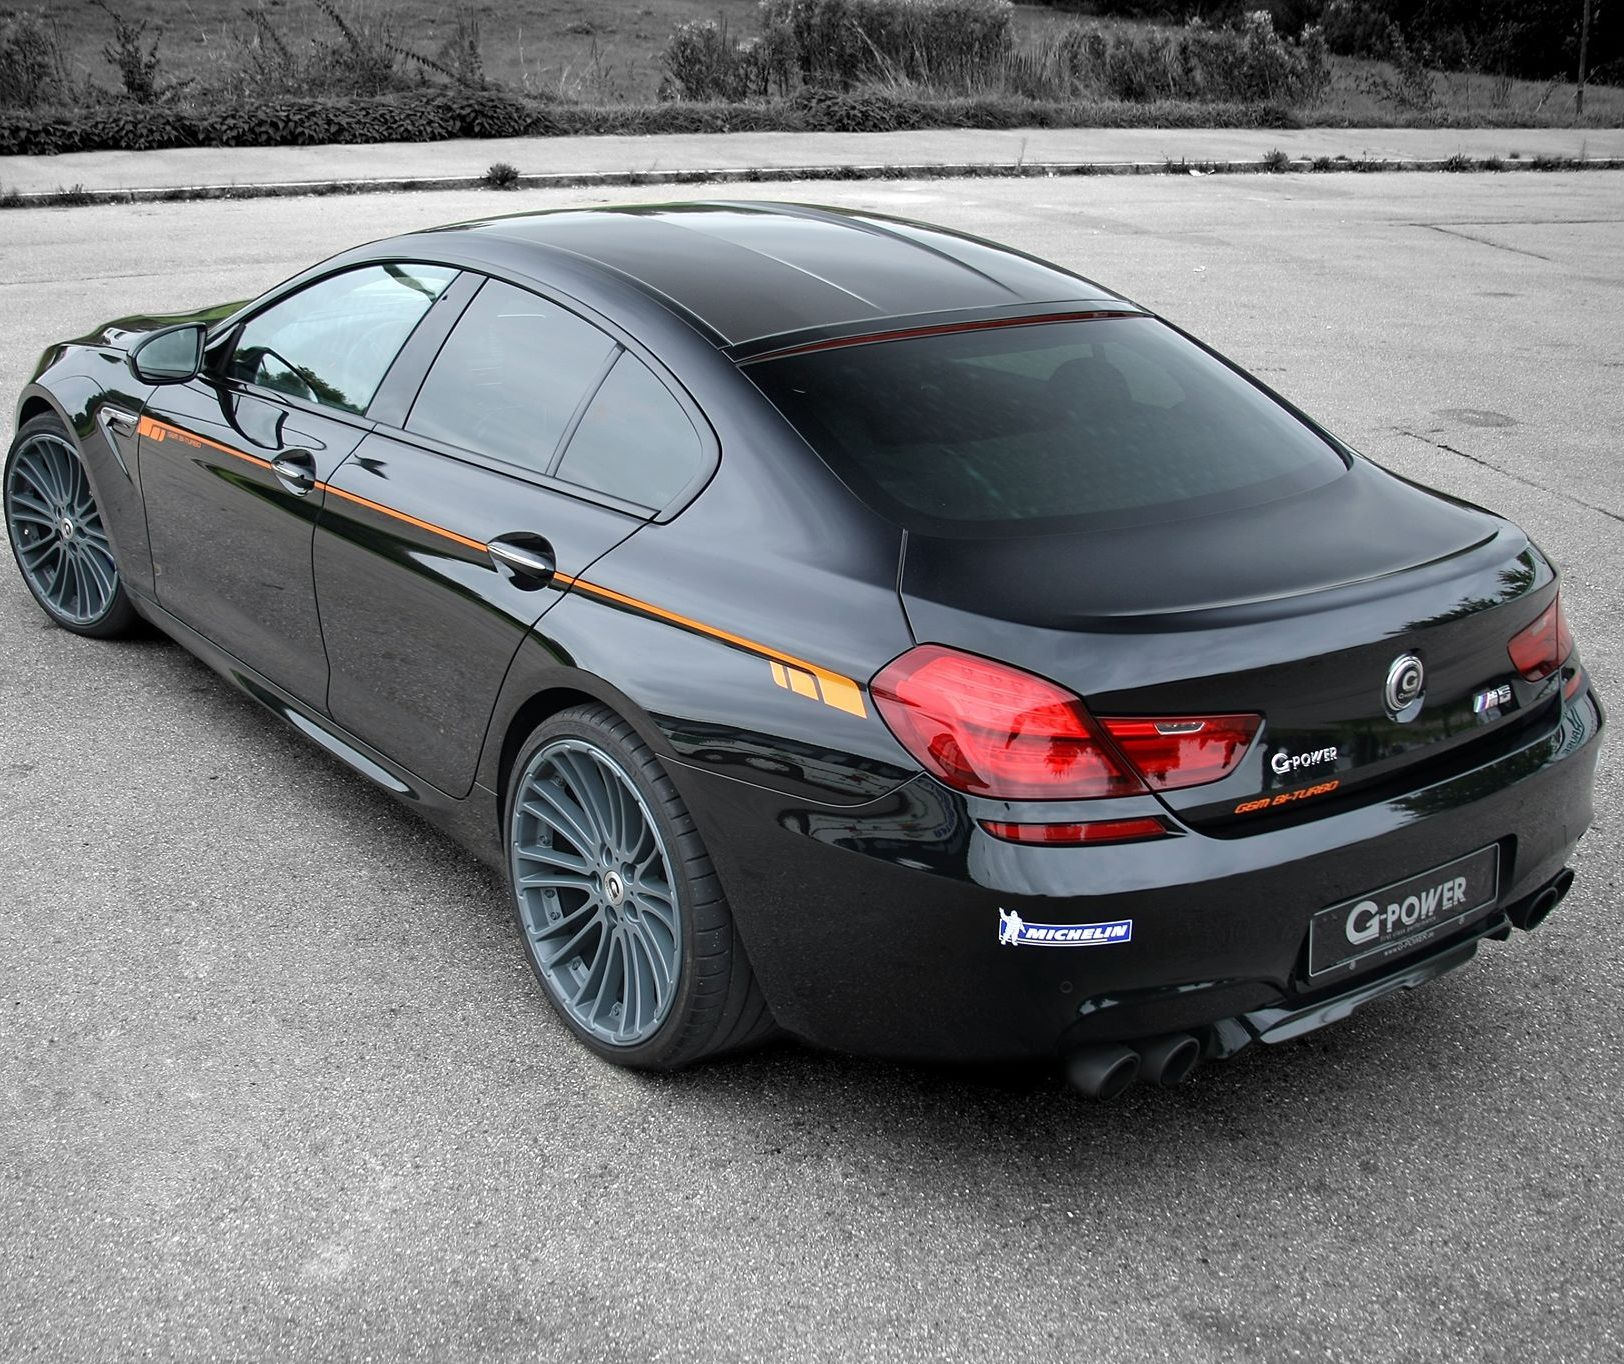 BMW M5 from G Power #CarFlash | Bmw m6, Bmw, Voitures de luxe